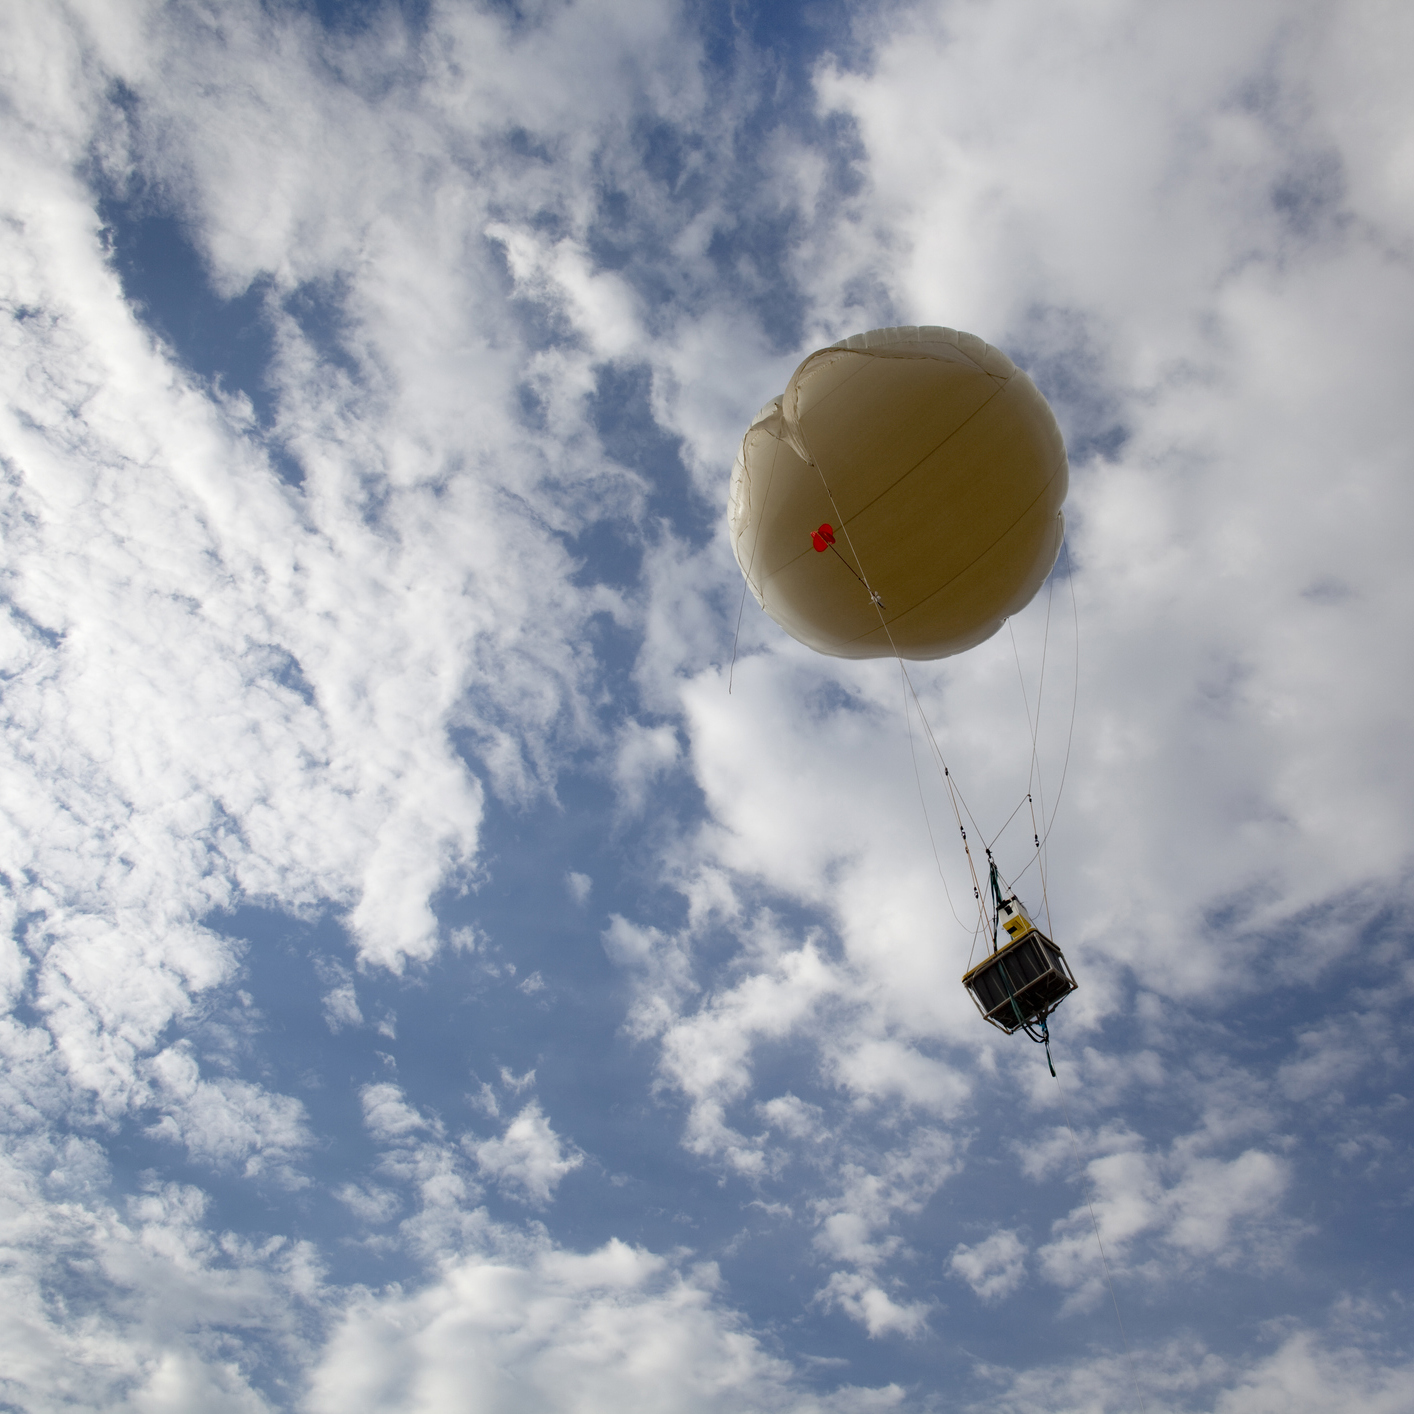 Weather balloon launch. Photo Credit: Getty Images.